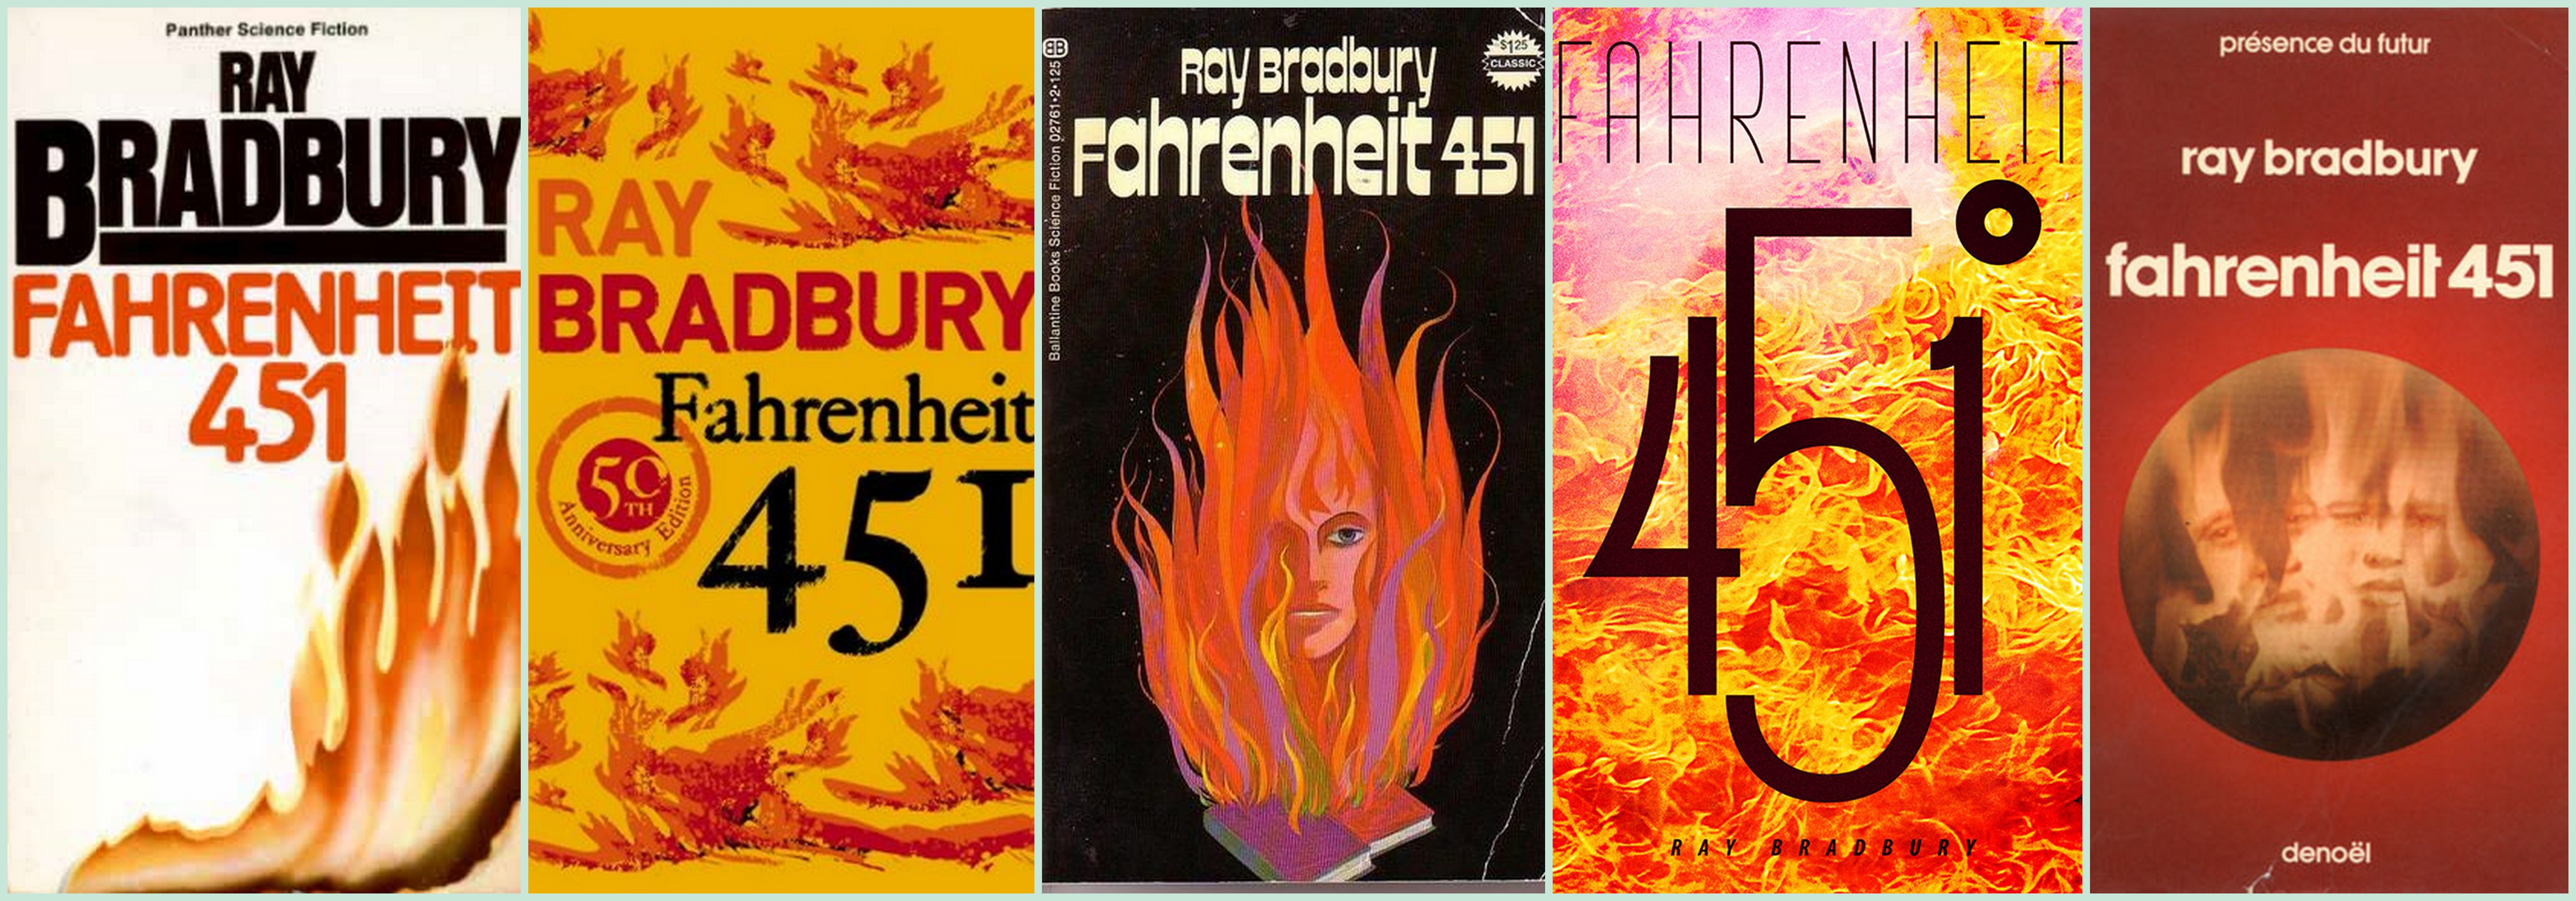 an essay on the book fahrenheit 451 by ray bradbury Analysis of the futuristic novel fahrenheit 451 by ray bradbury in the futuristic novel fahrenheit 451, the author, ray bradbury, expresses several problems that influence the story many of these problems have to do with the behavior of the people in the twenty- fourth century society.